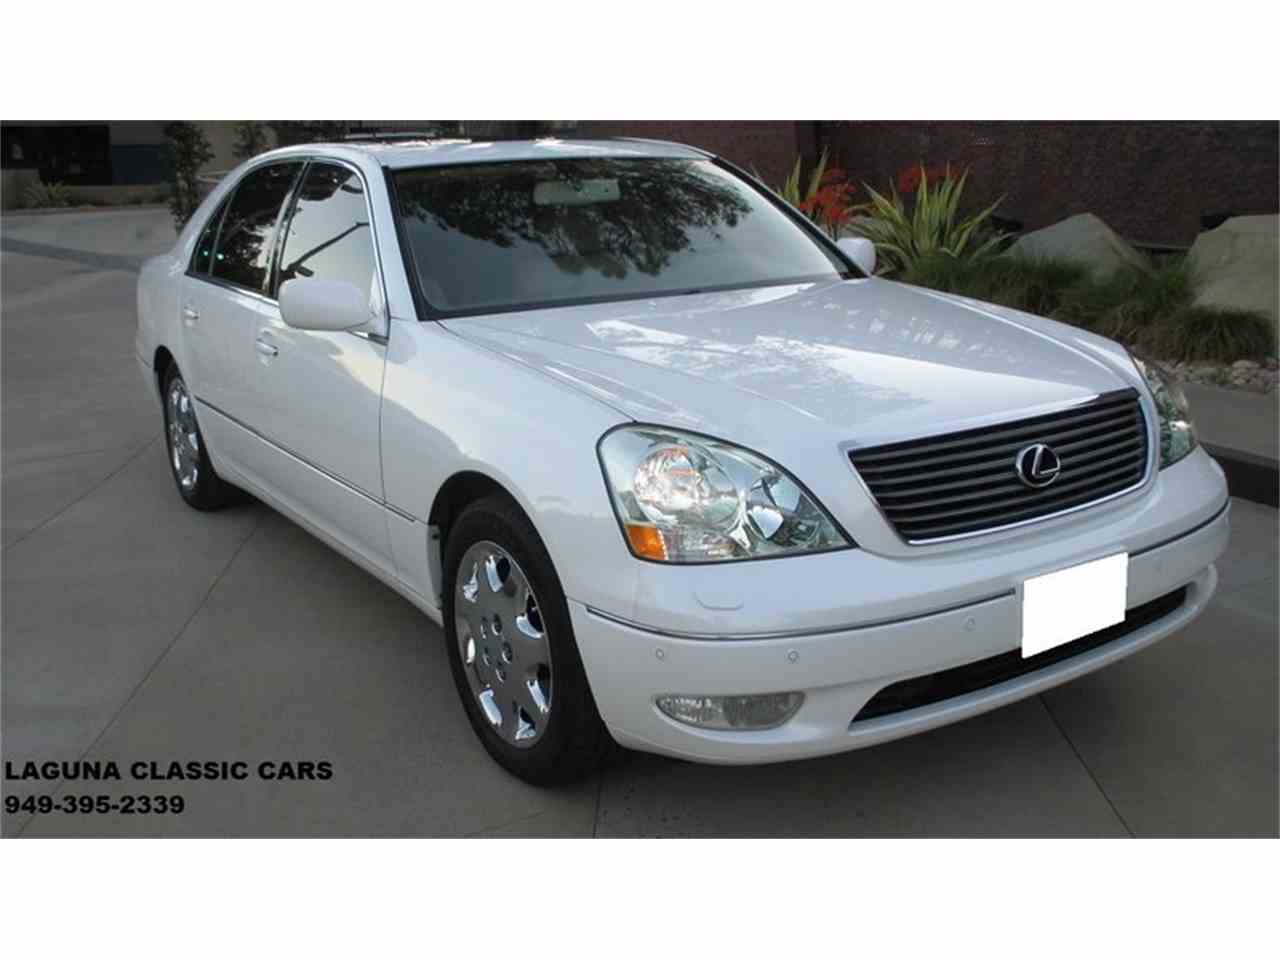 2002 Lexus LS430 ULTRA LUXURY PACKAGE for Sale | ClassicCars.com ...